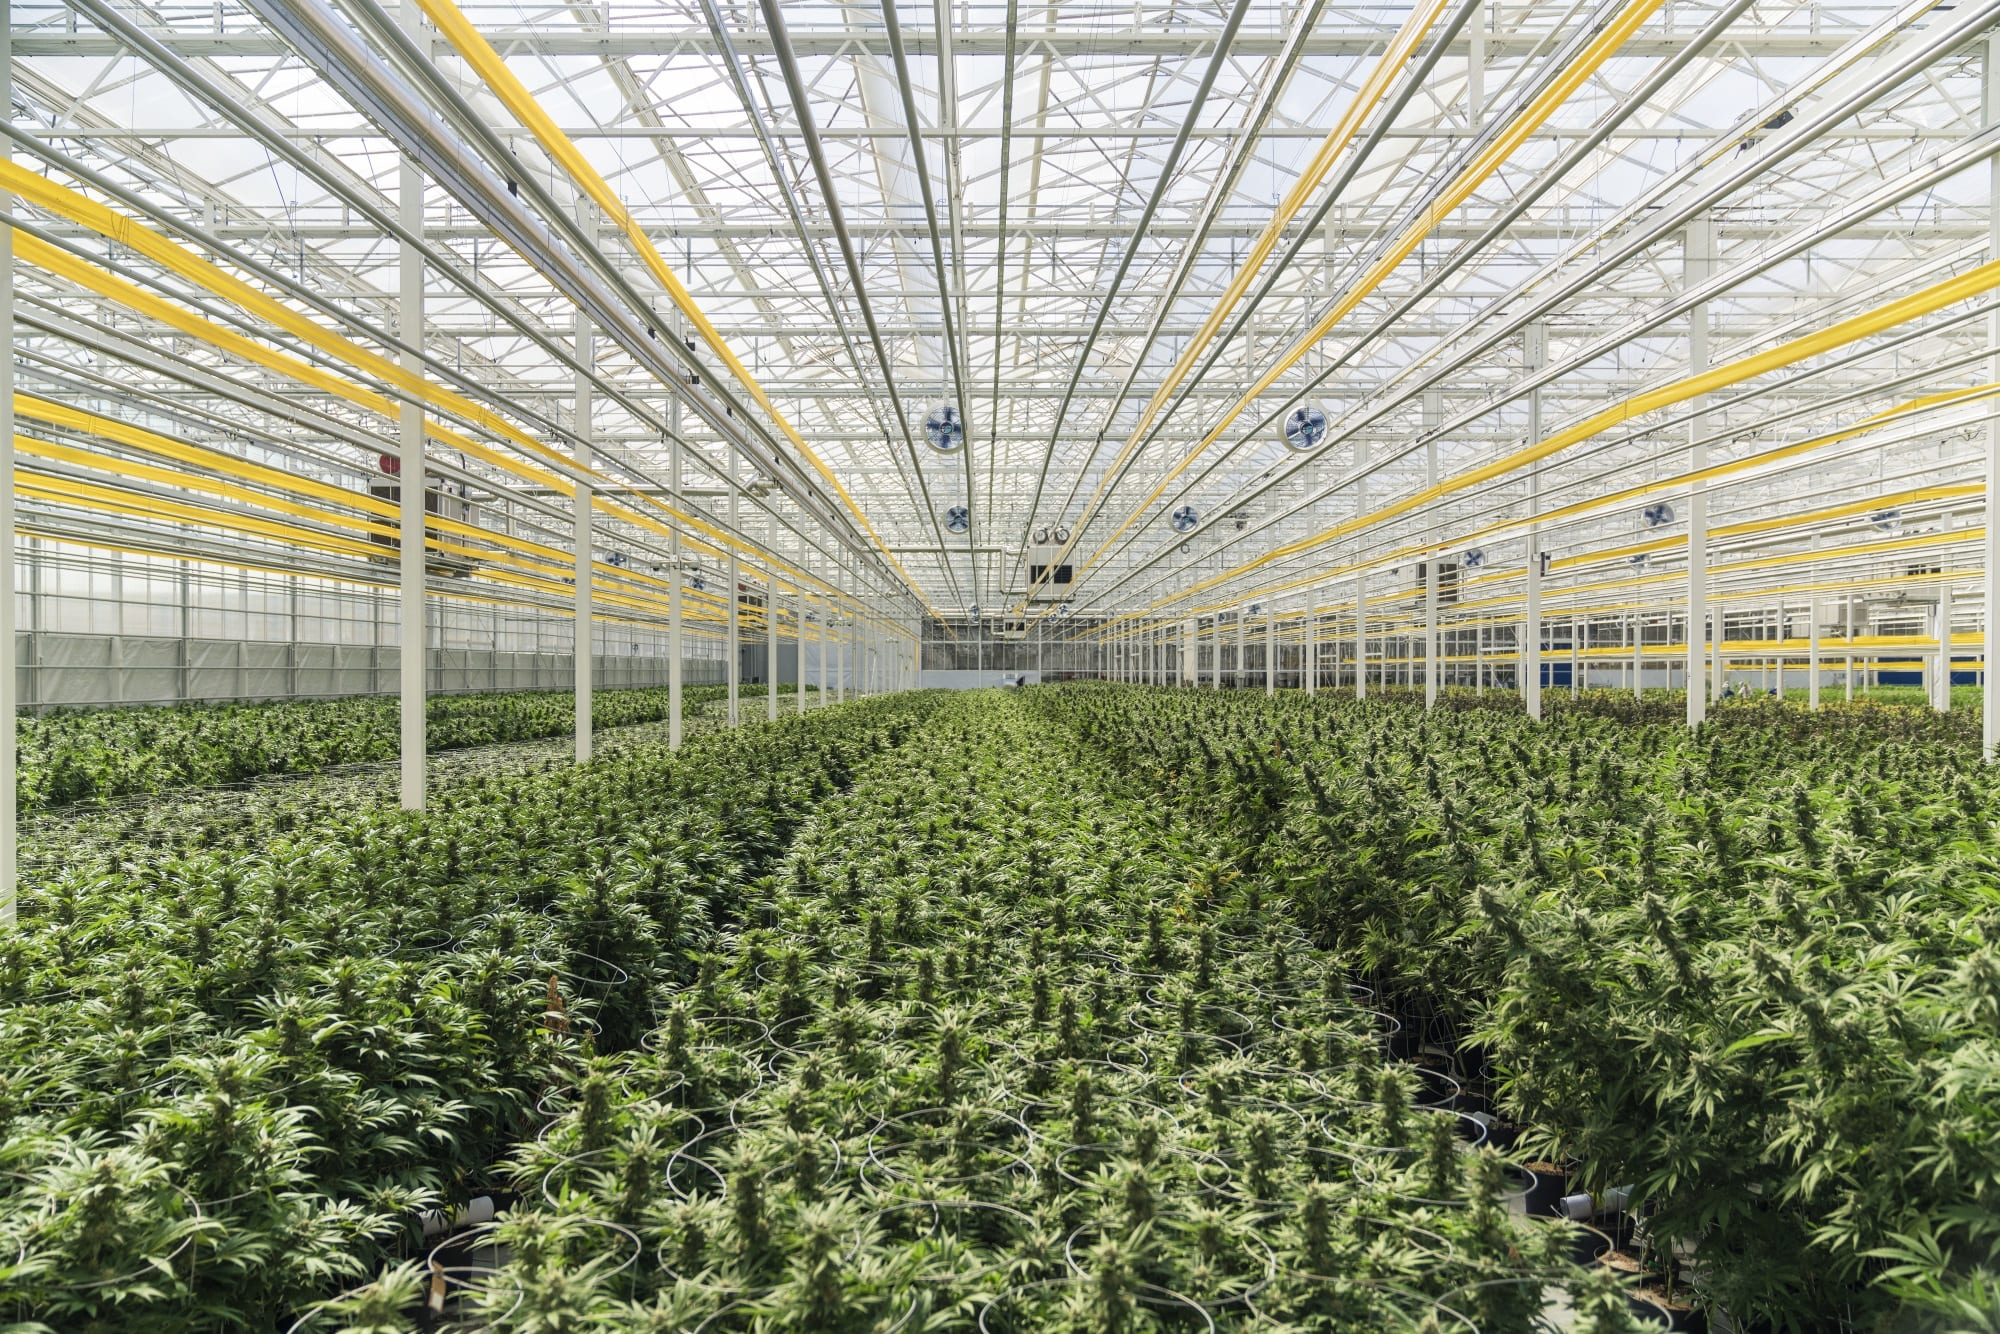 Is Aphria Looking to Buy CannTrust's Assets? - Mugglehead